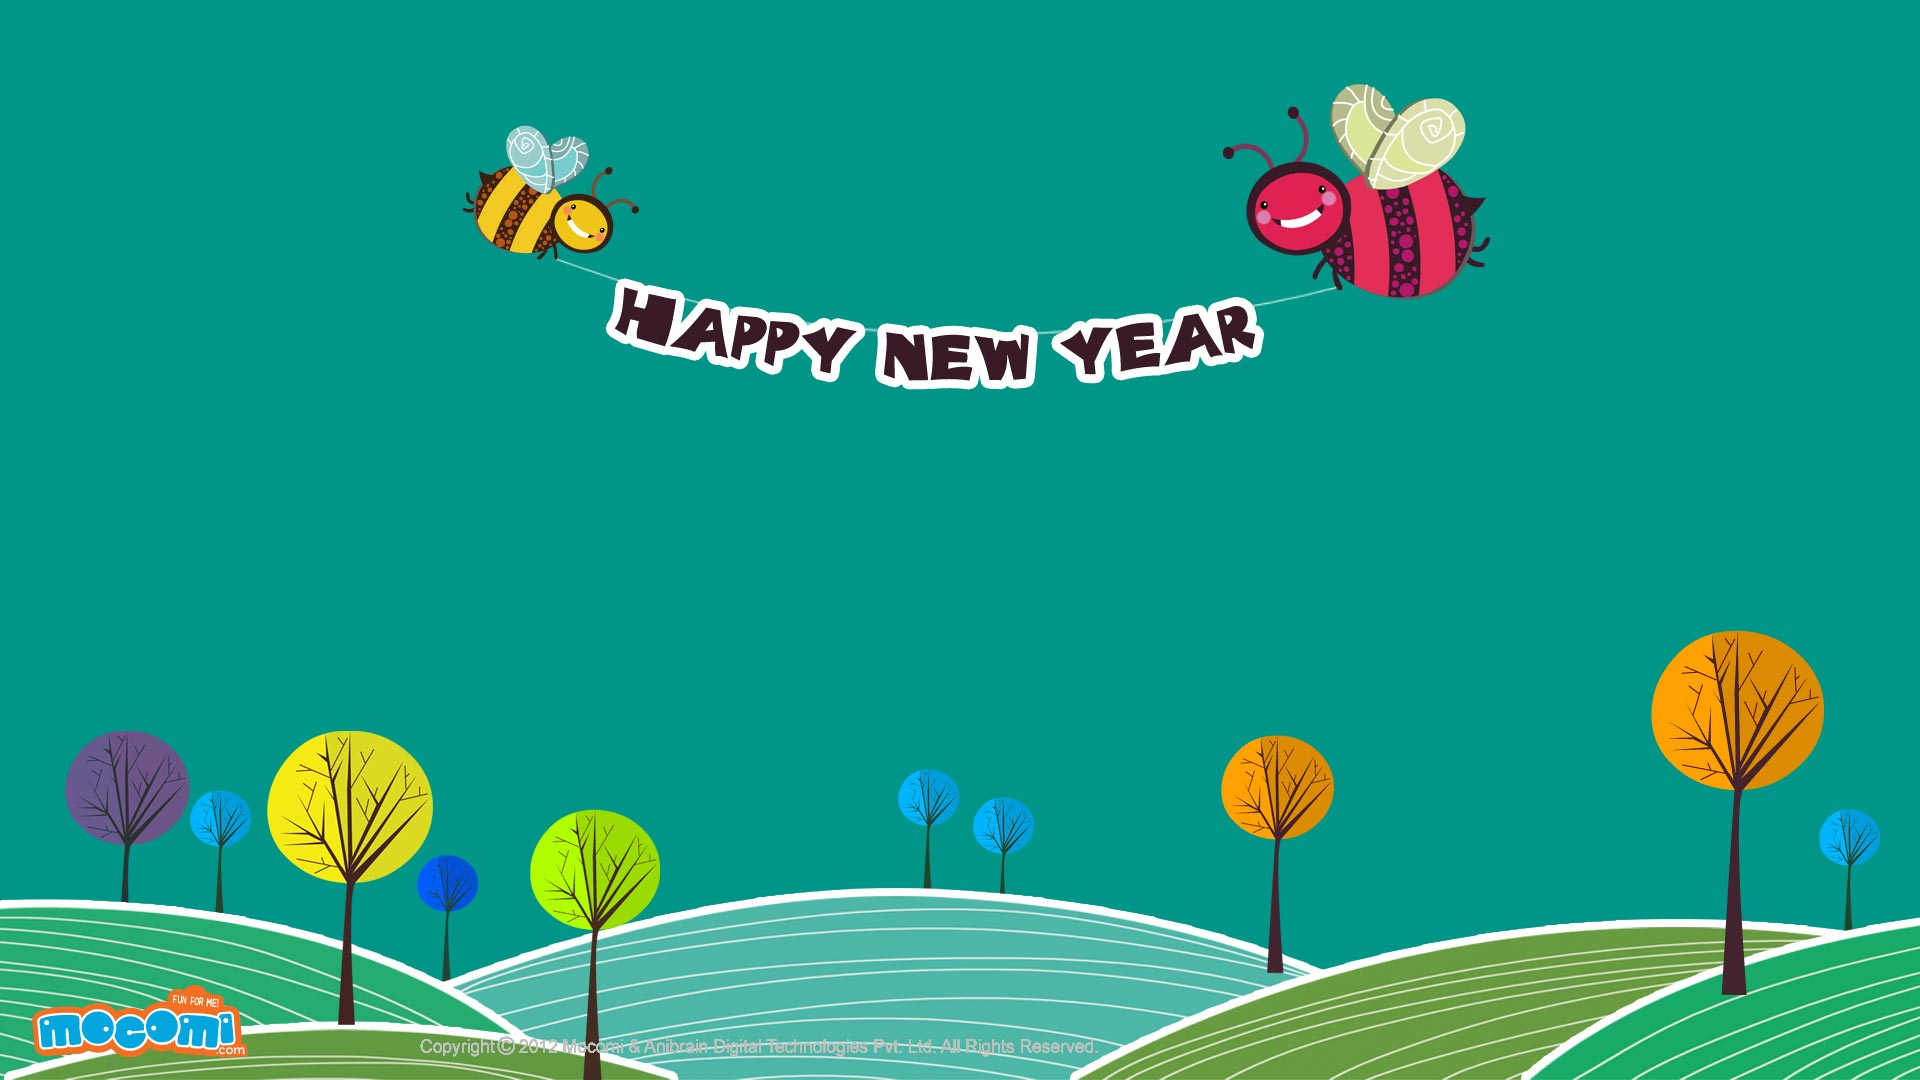 Mocomi wishes you a Happy New Year